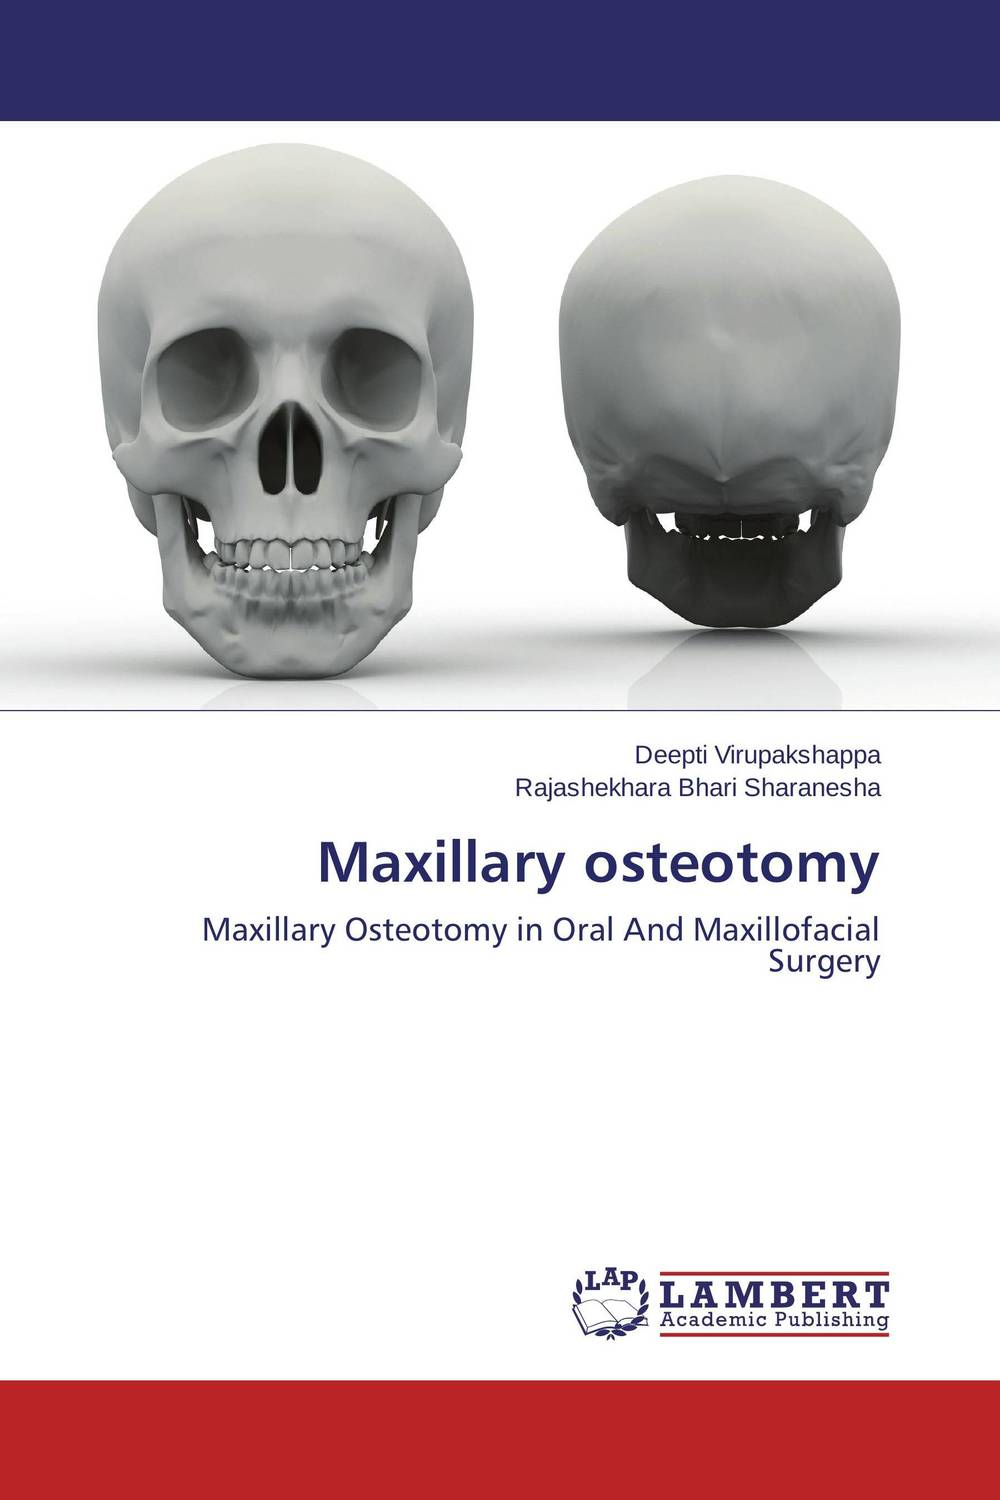 Maxillary osteotomy case history of therapeutic patient manual